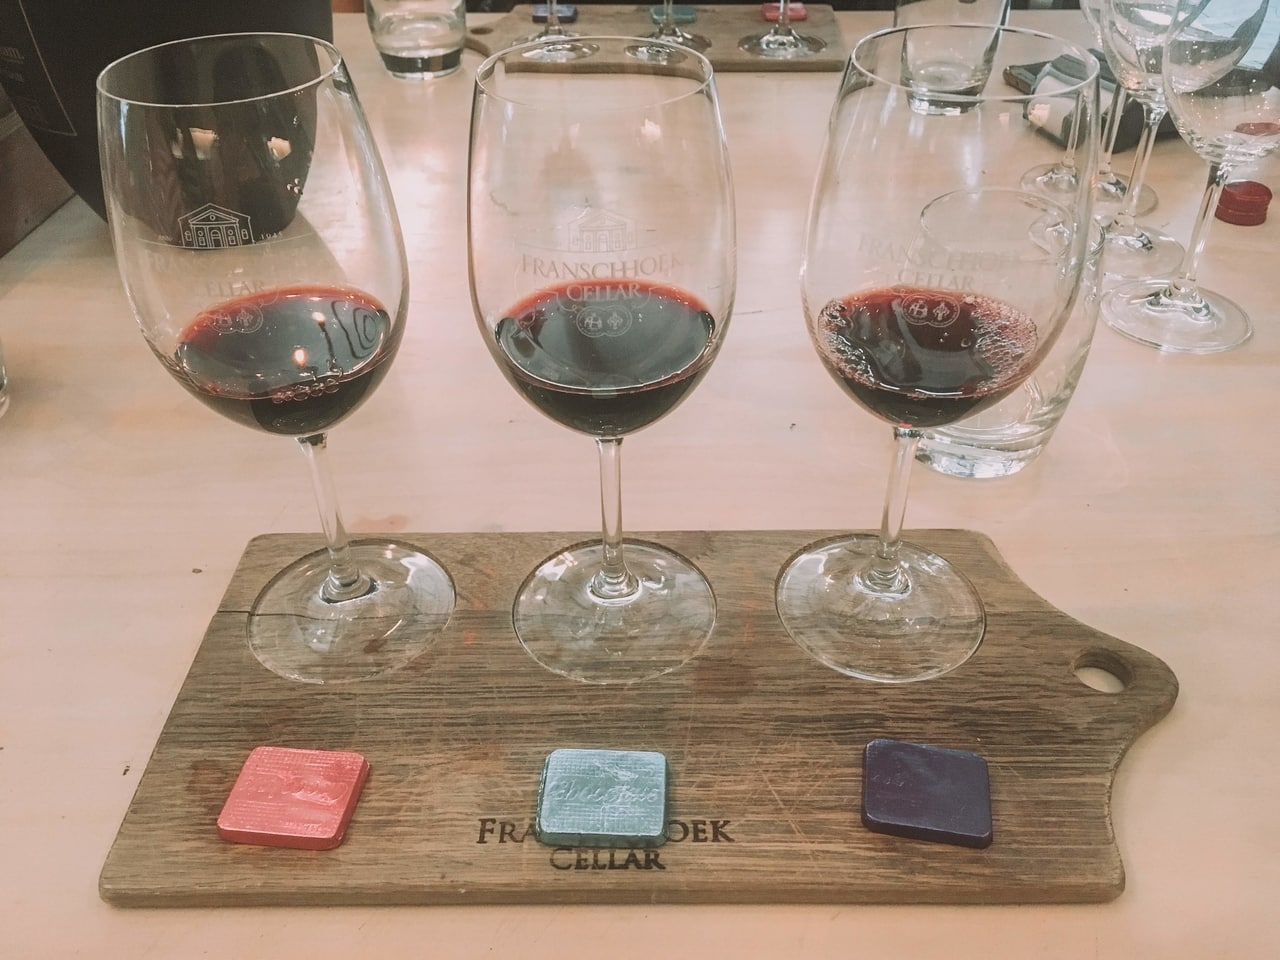 Wine and Chocolate Tasting at Franschhoek Cellar in South Africa